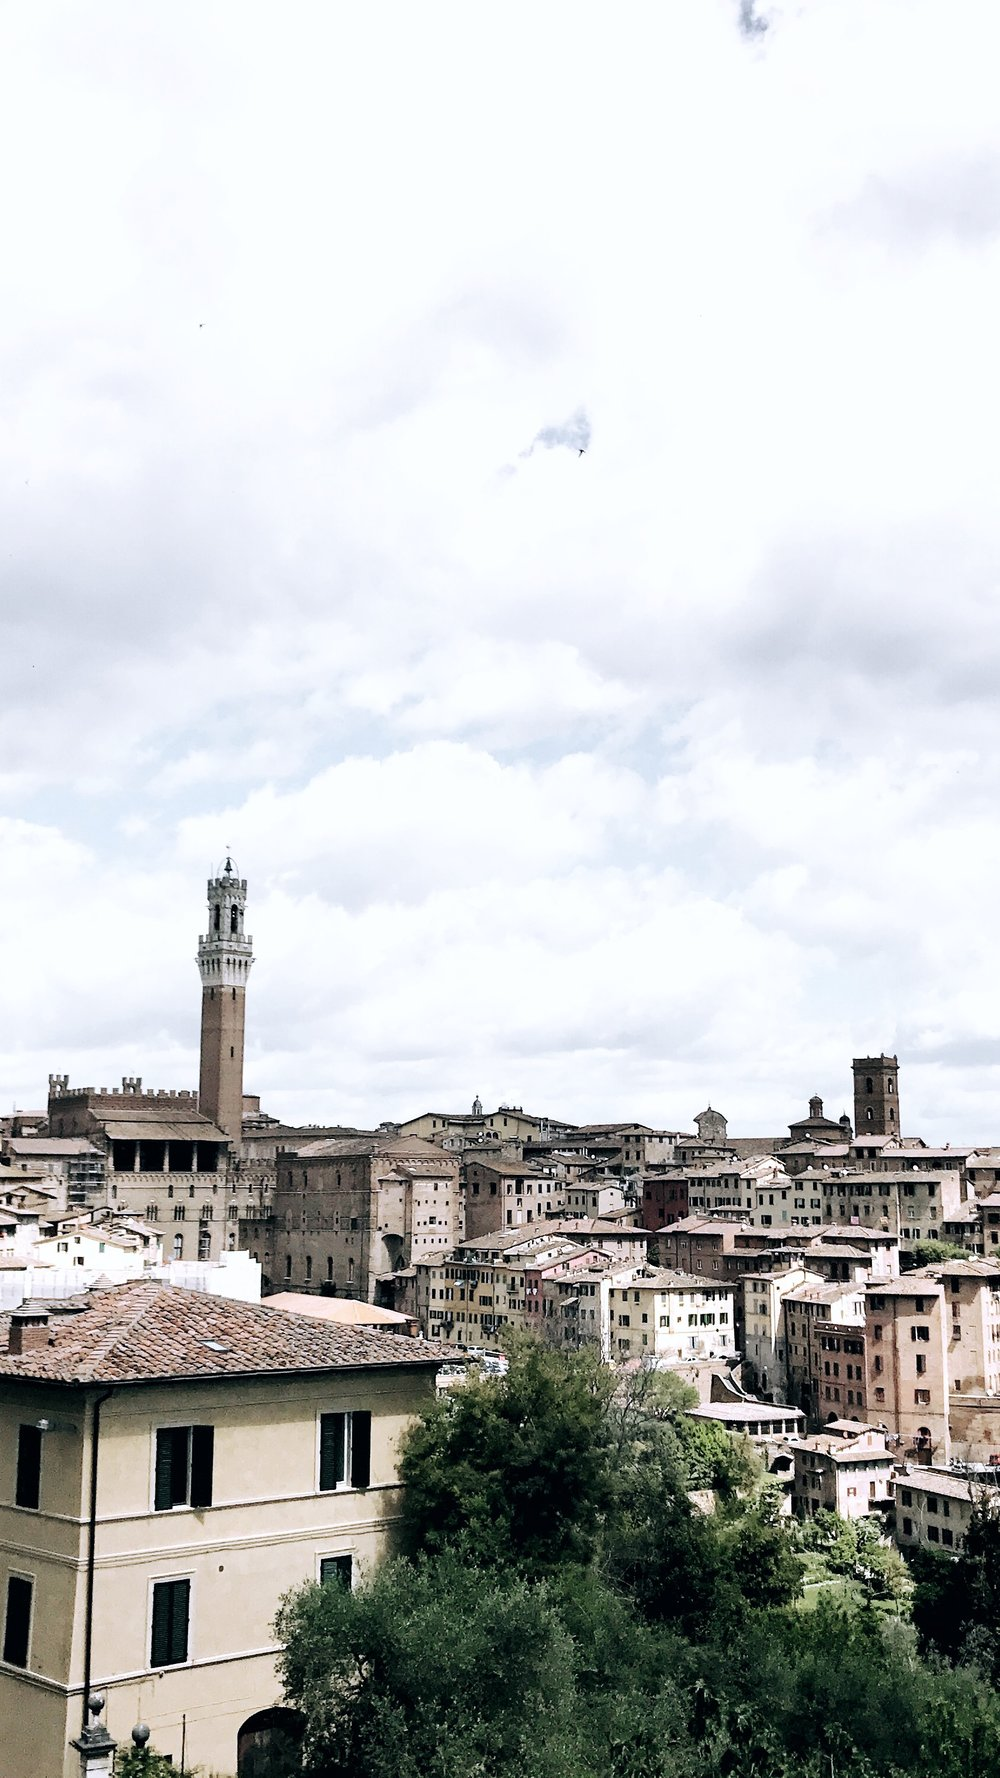 Panoramic views of Siena, Italy